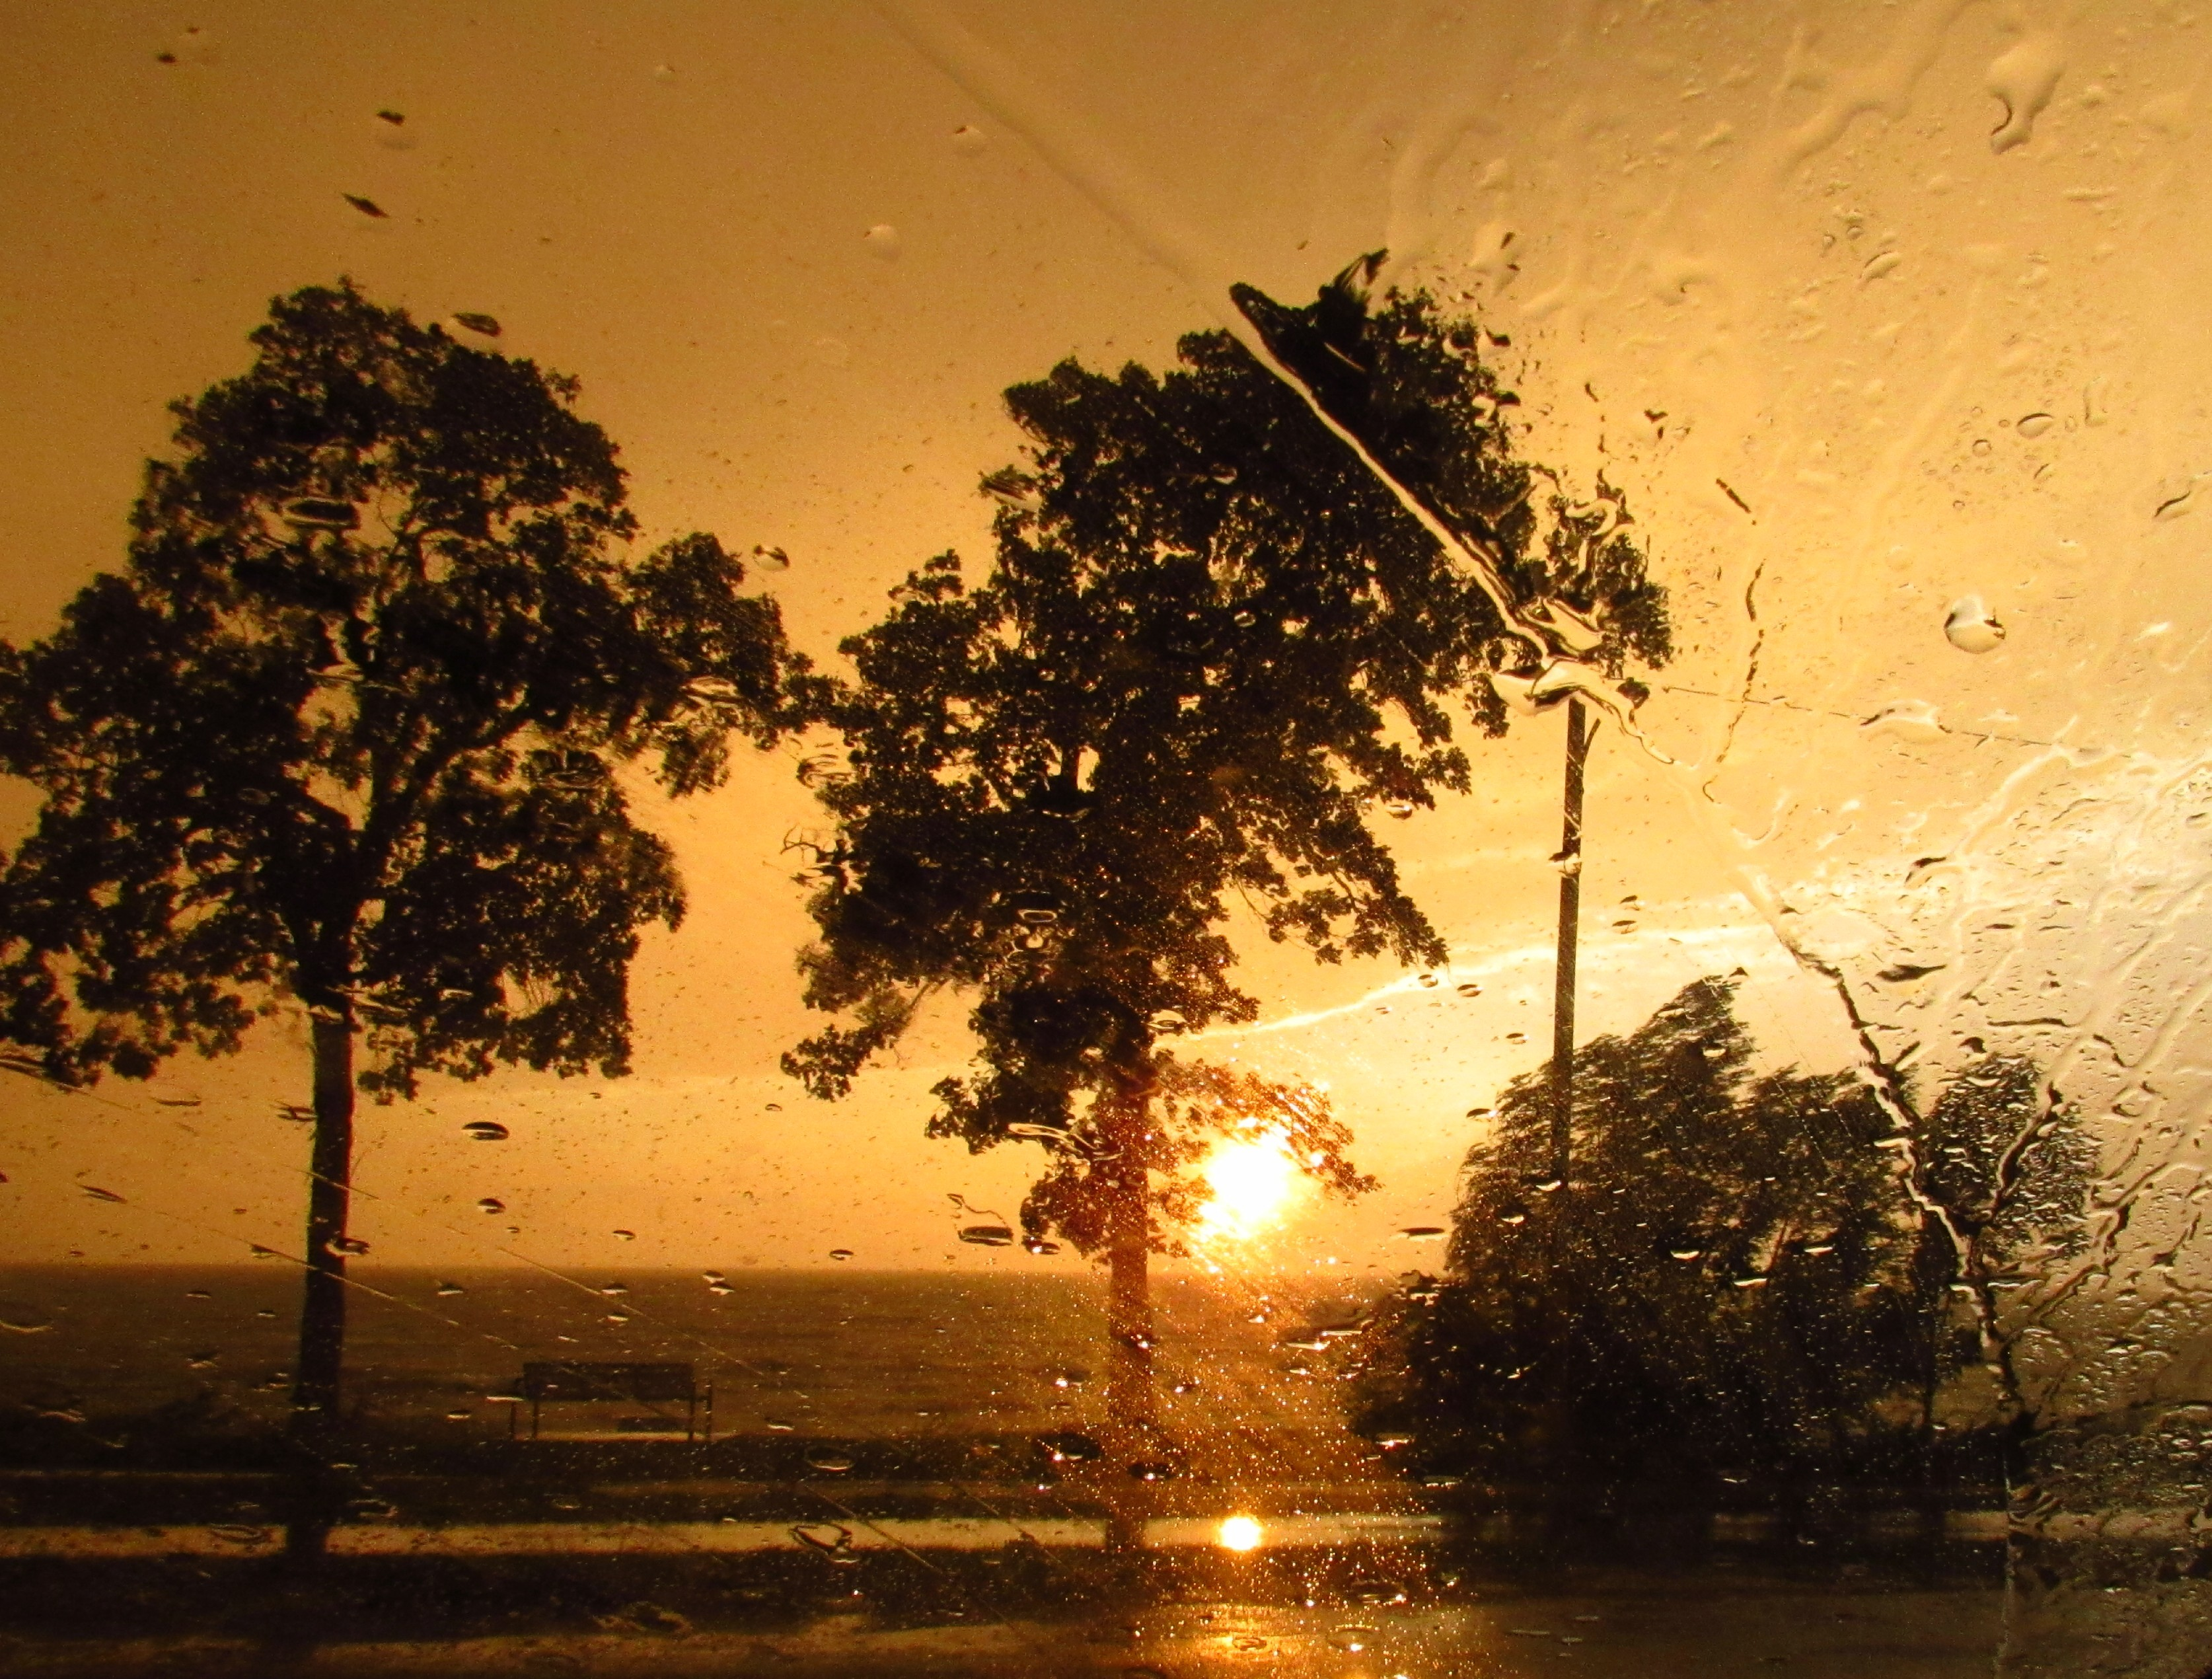 Photo of a sunset taken from behind glass with rain drops on it. There are three trees in the foreground, silhouetted by the sun.